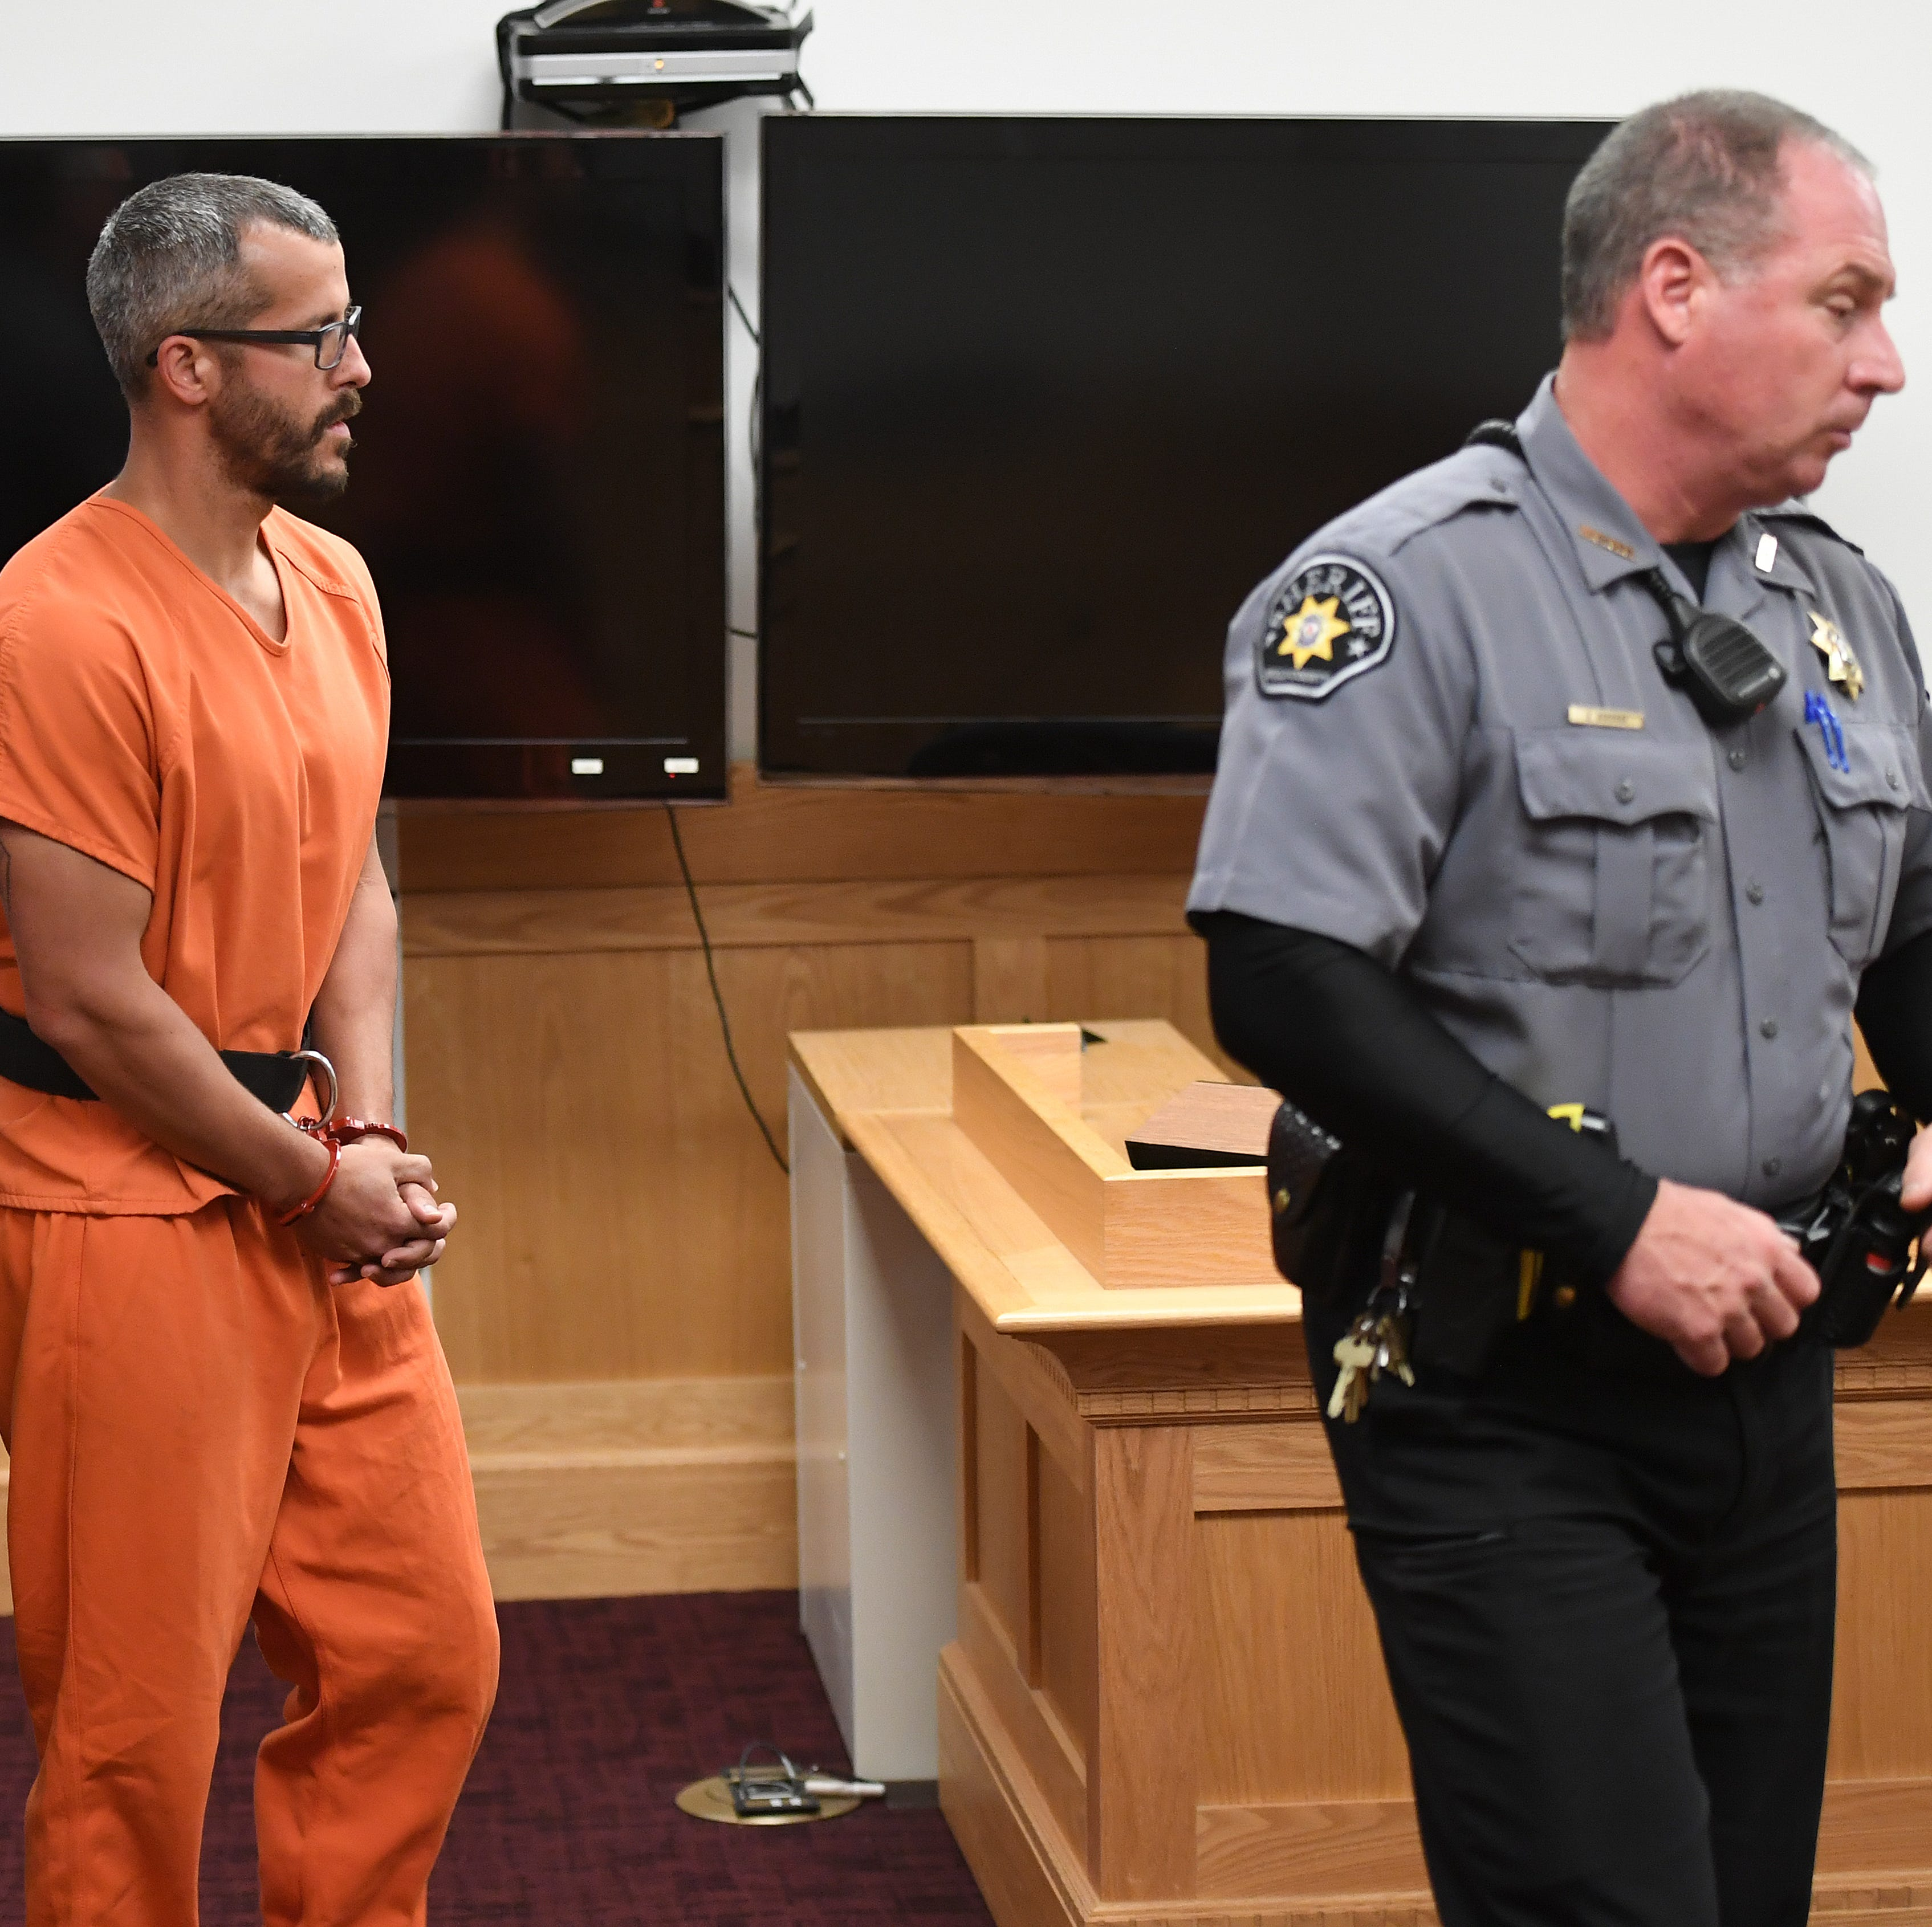 Christopher Watts case: Weld DA requests footprints to compare to evidence found near bodies